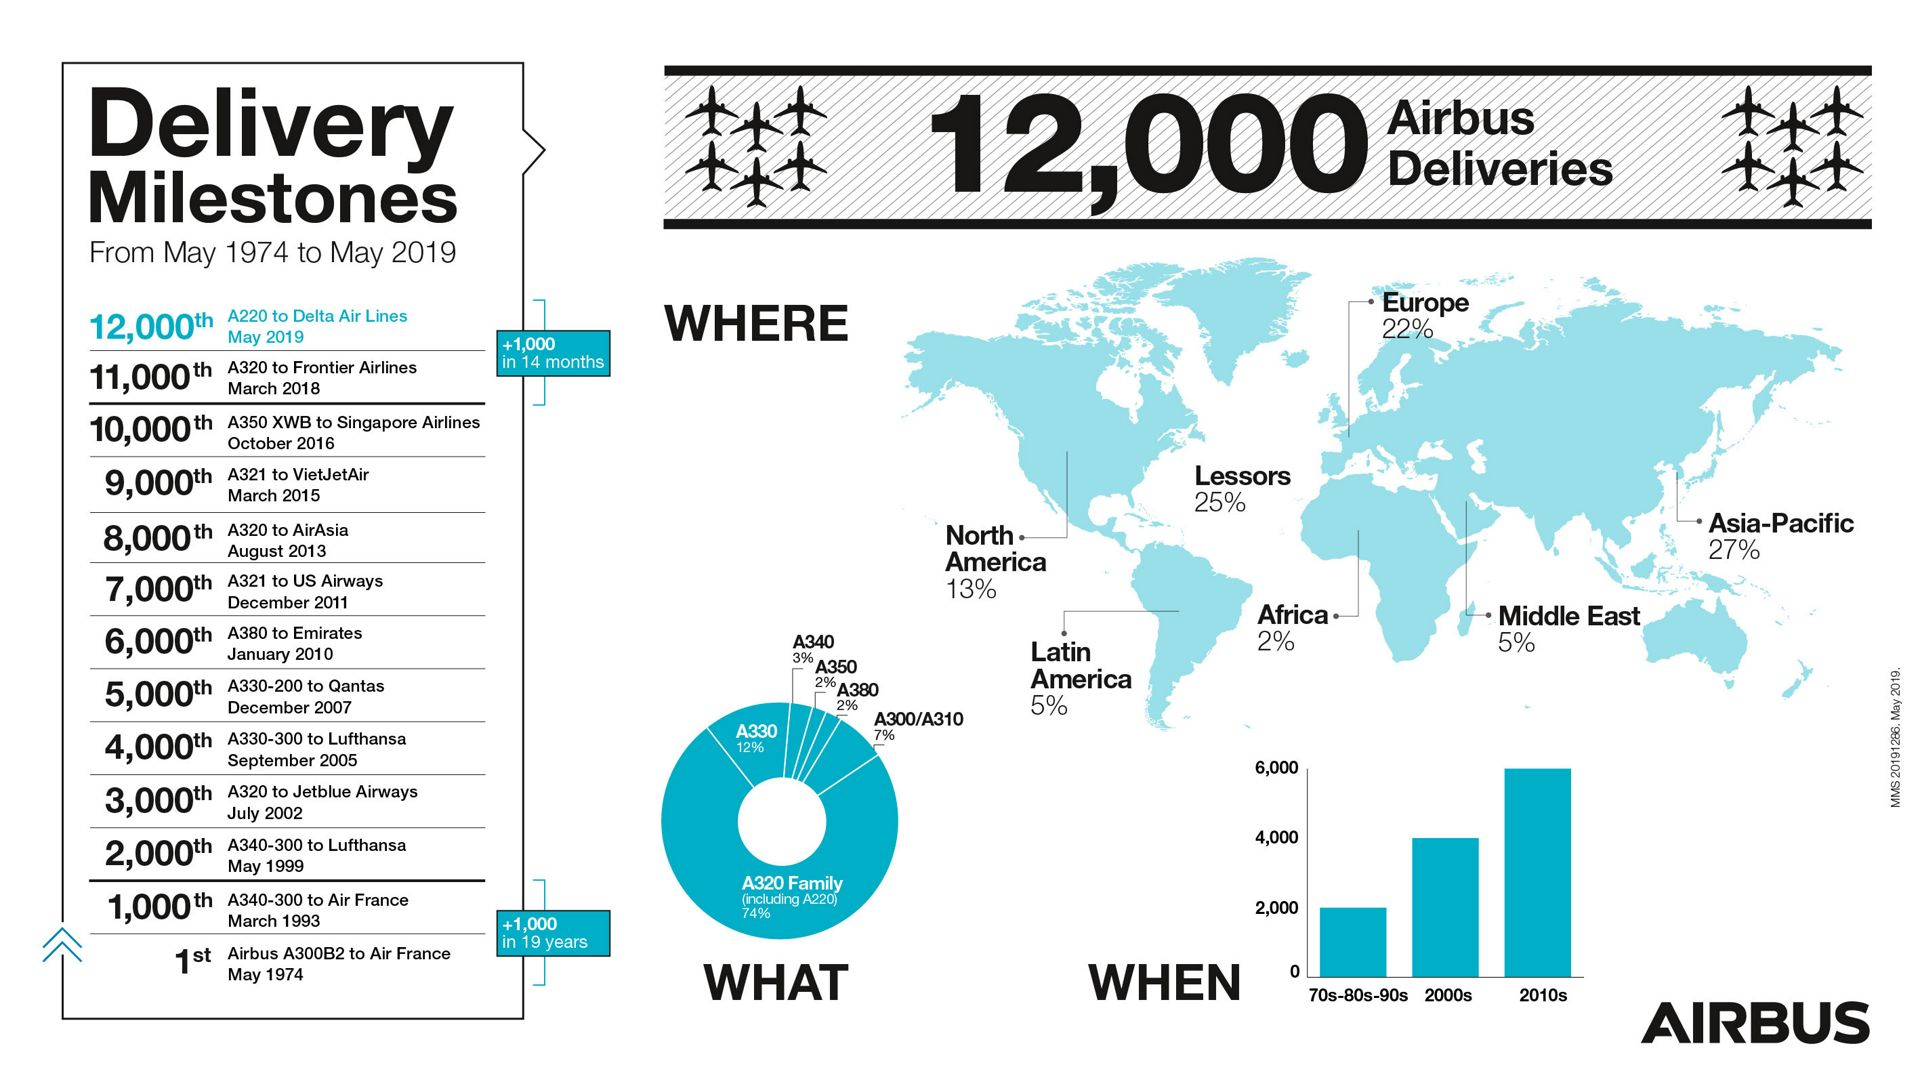 https://airbus-h.assetsadobe2.com/is/image/content/dam/stock-and-creative/infographic/12k-aircraft-infographic.JPG?wid=1920&fit=fit,1&qlt=85,0